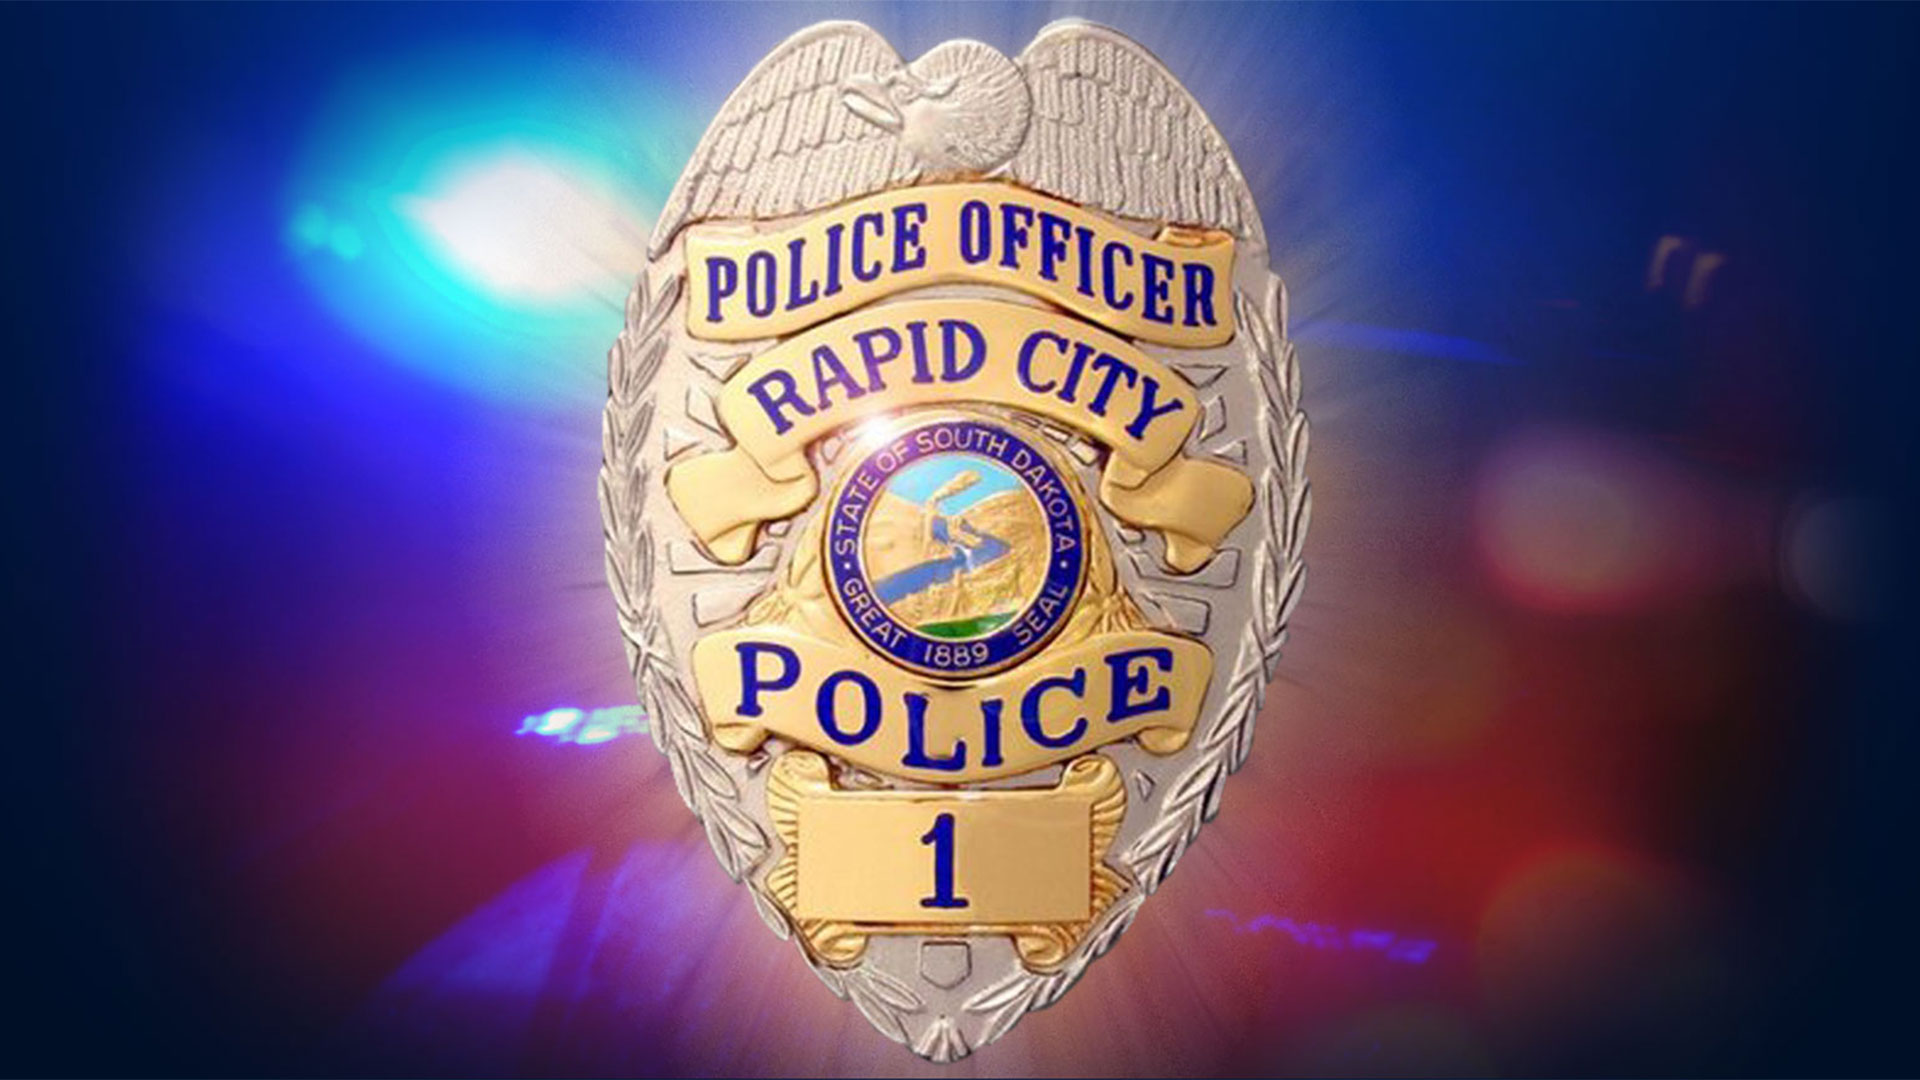 KELO Rapid City Police badge